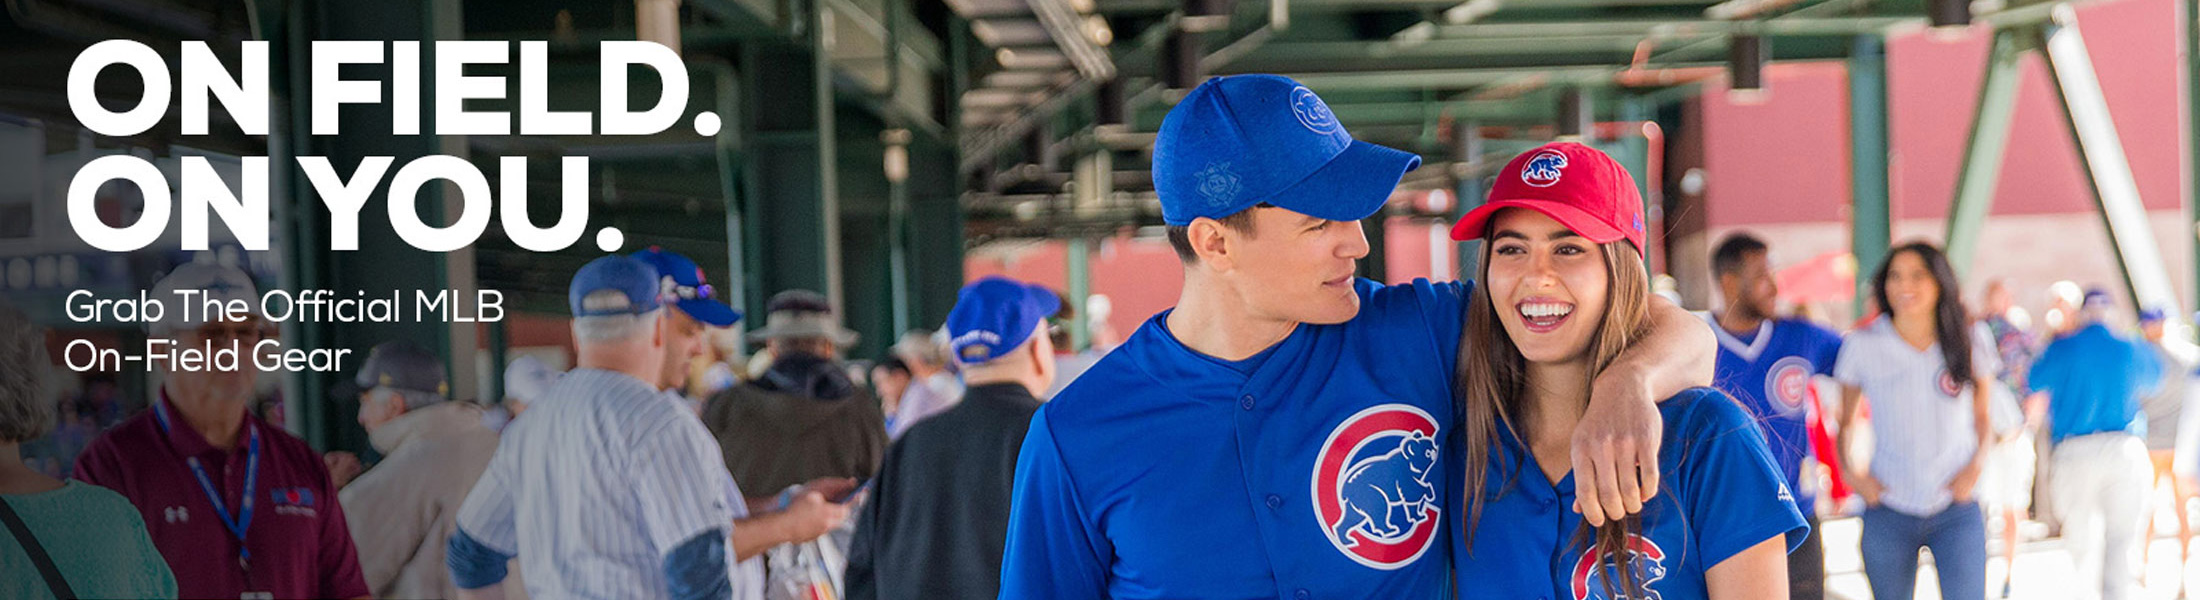 Chicago Cubs Official On-Field Gear at SportsWorldChicago.com